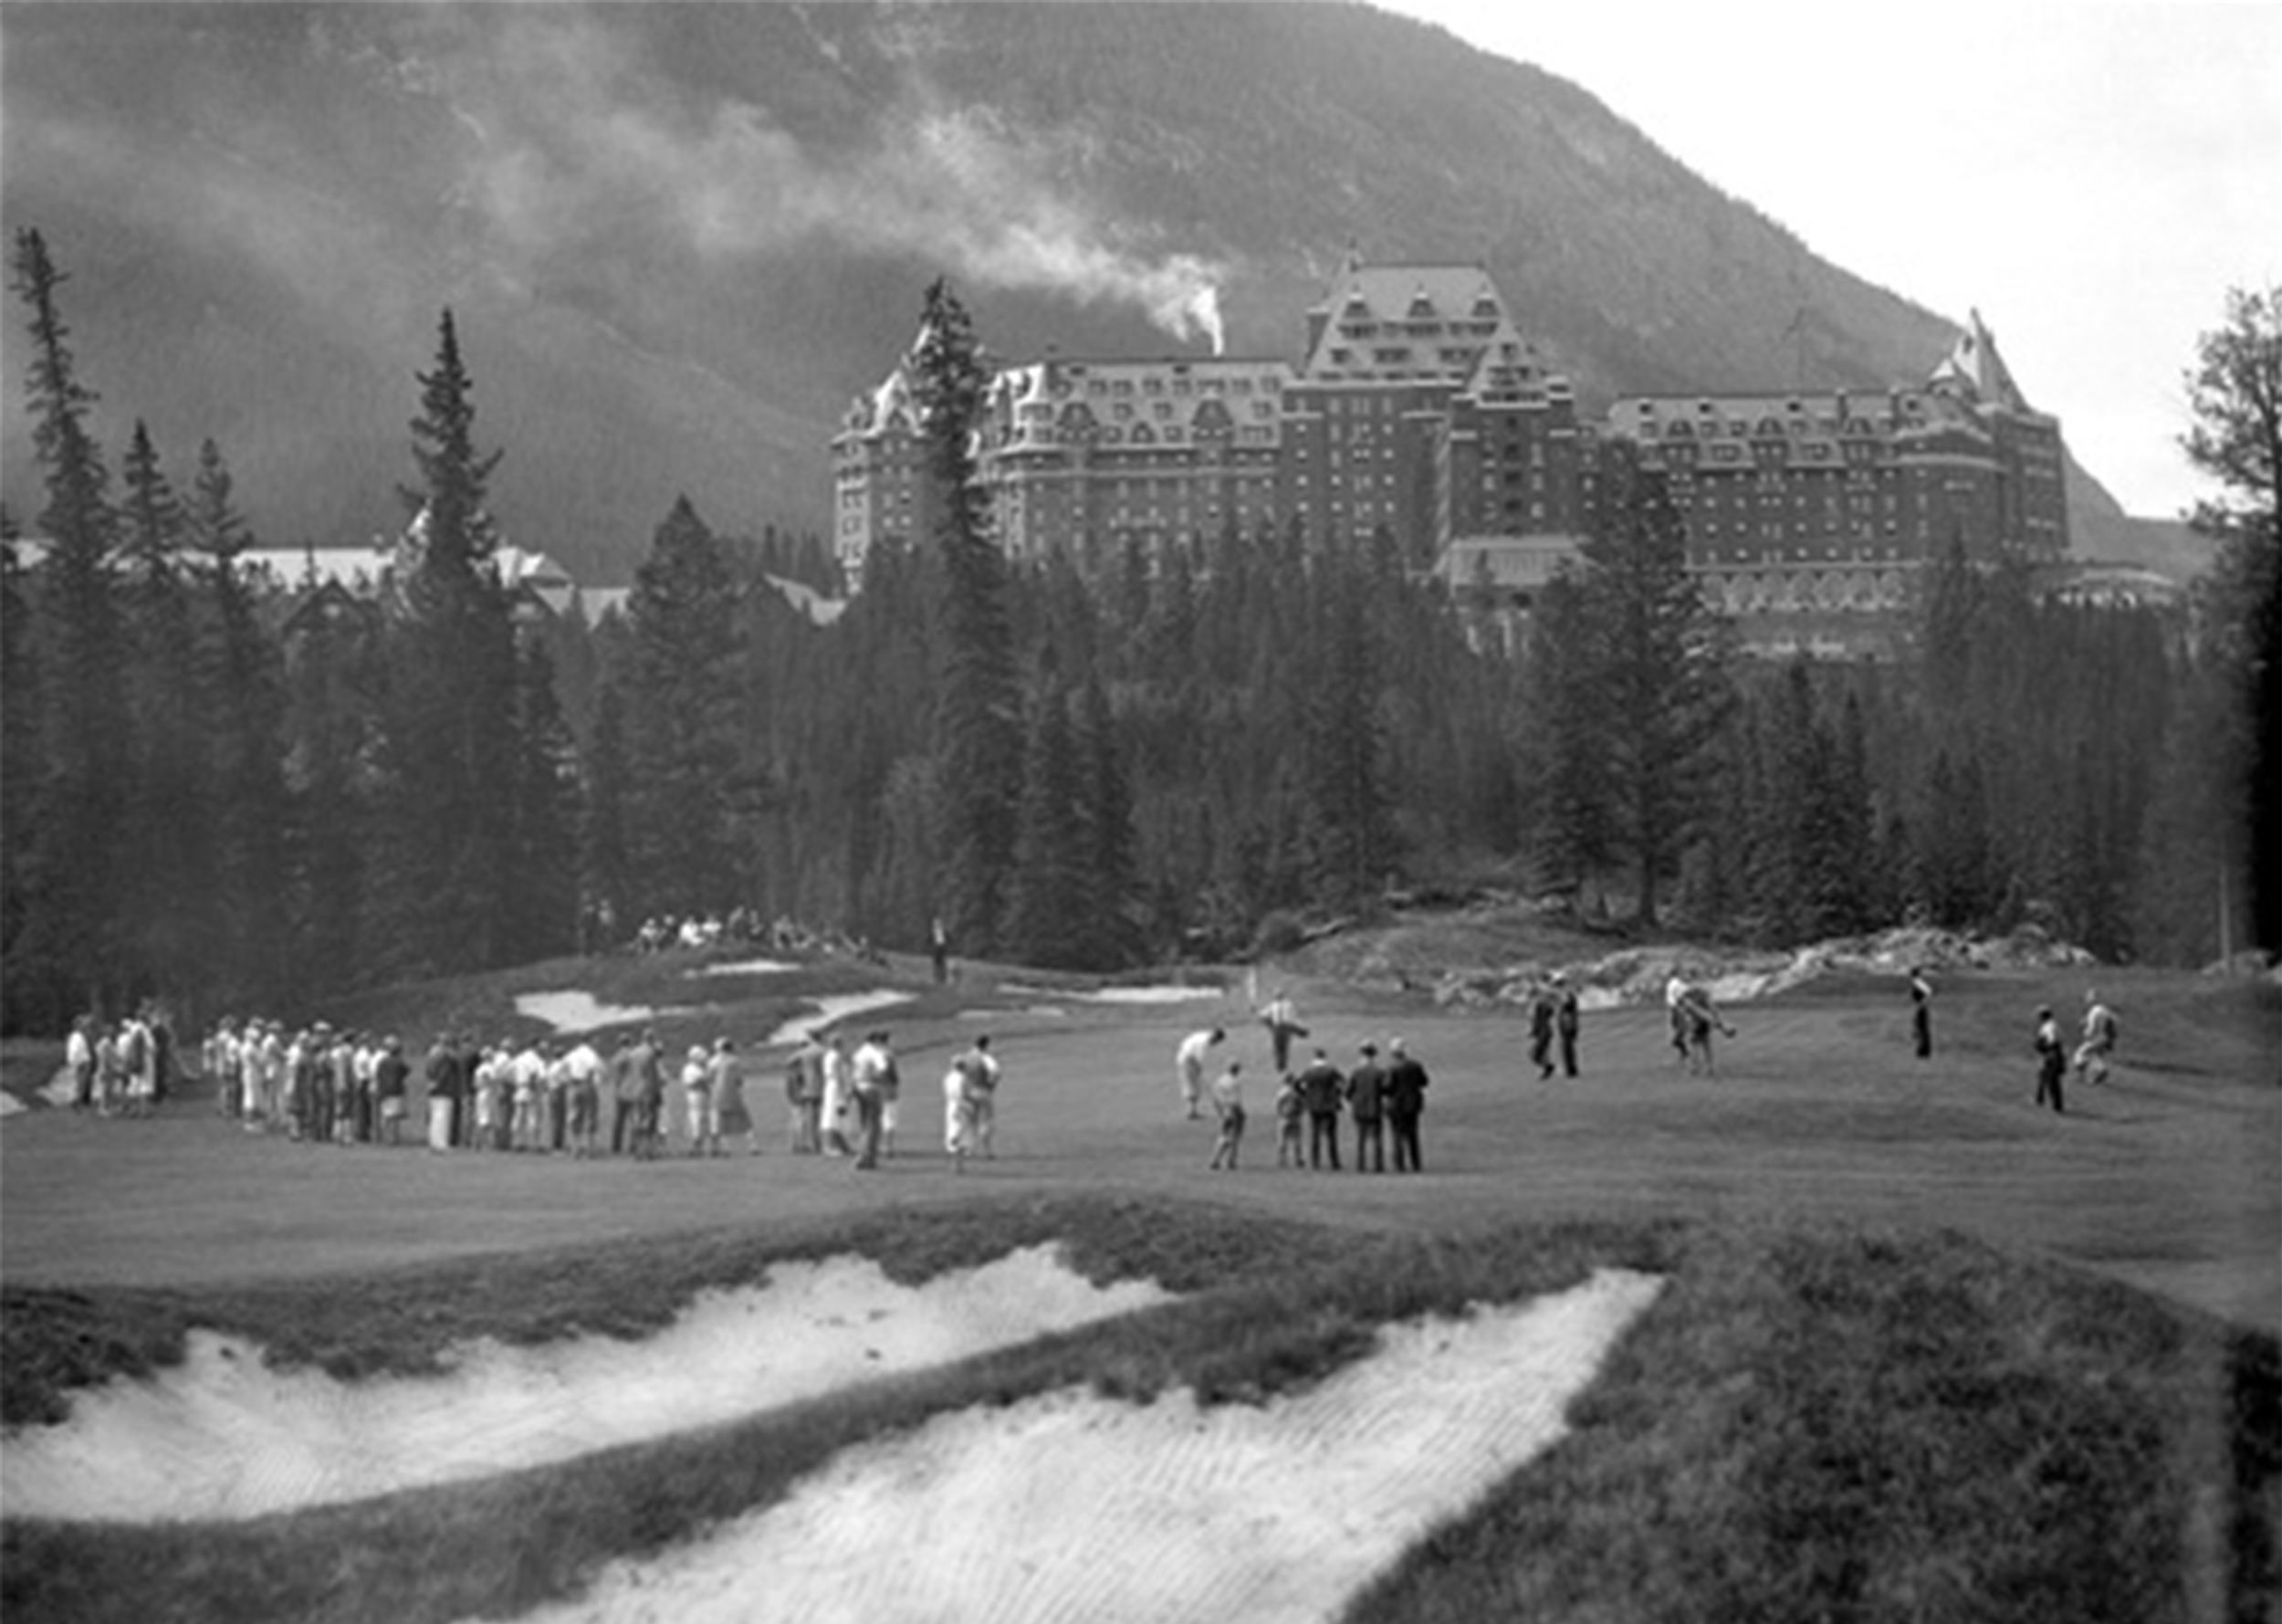 The finishing hole at Banff was just as spectacular as the first. With the Banff Springs Hotel towering above the putting green, and the sounds of Bow Falls crashing less than 300 yards away, the golf experience was unrivaled for the late 1920's.